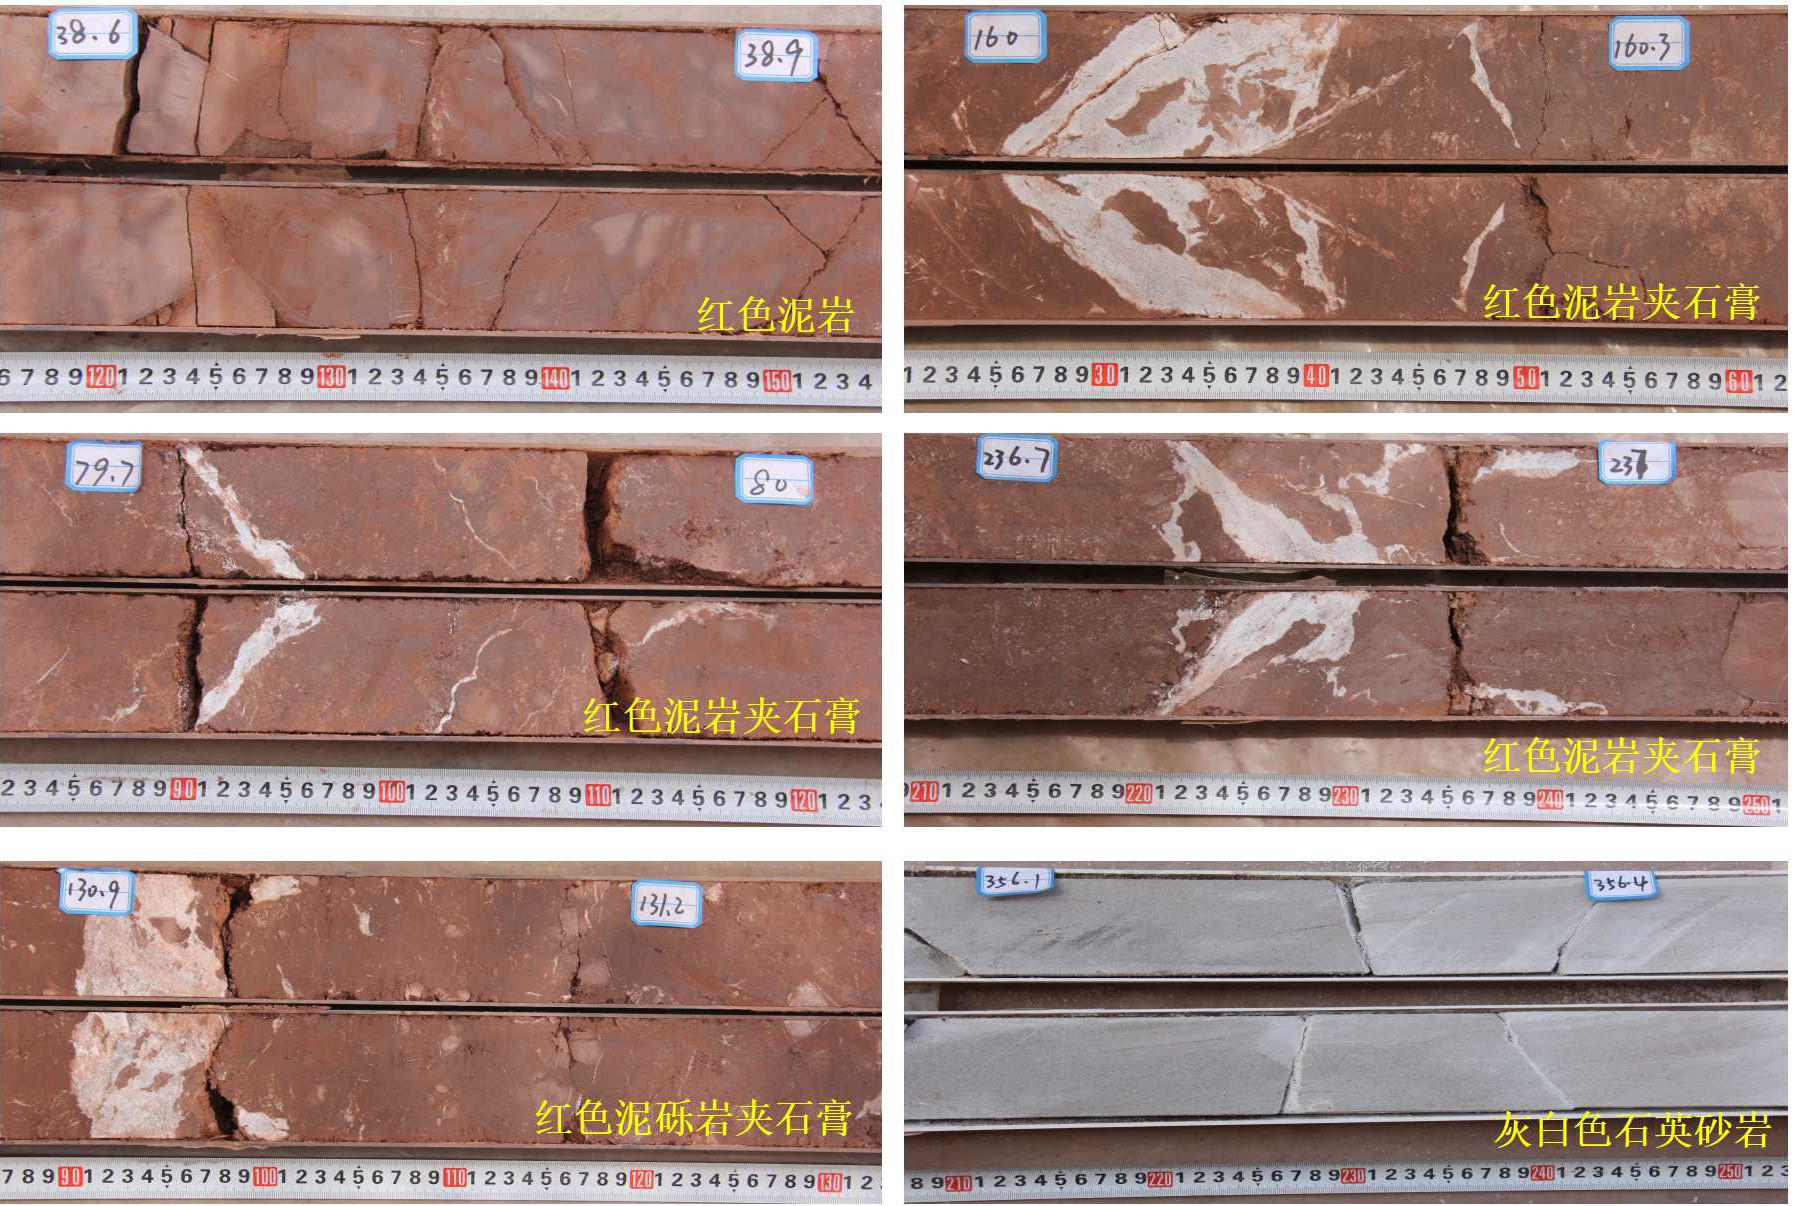 Lithology description of a 400 m-thick Paleocene strata borehole in the Xiaojinggu area, Yunnan